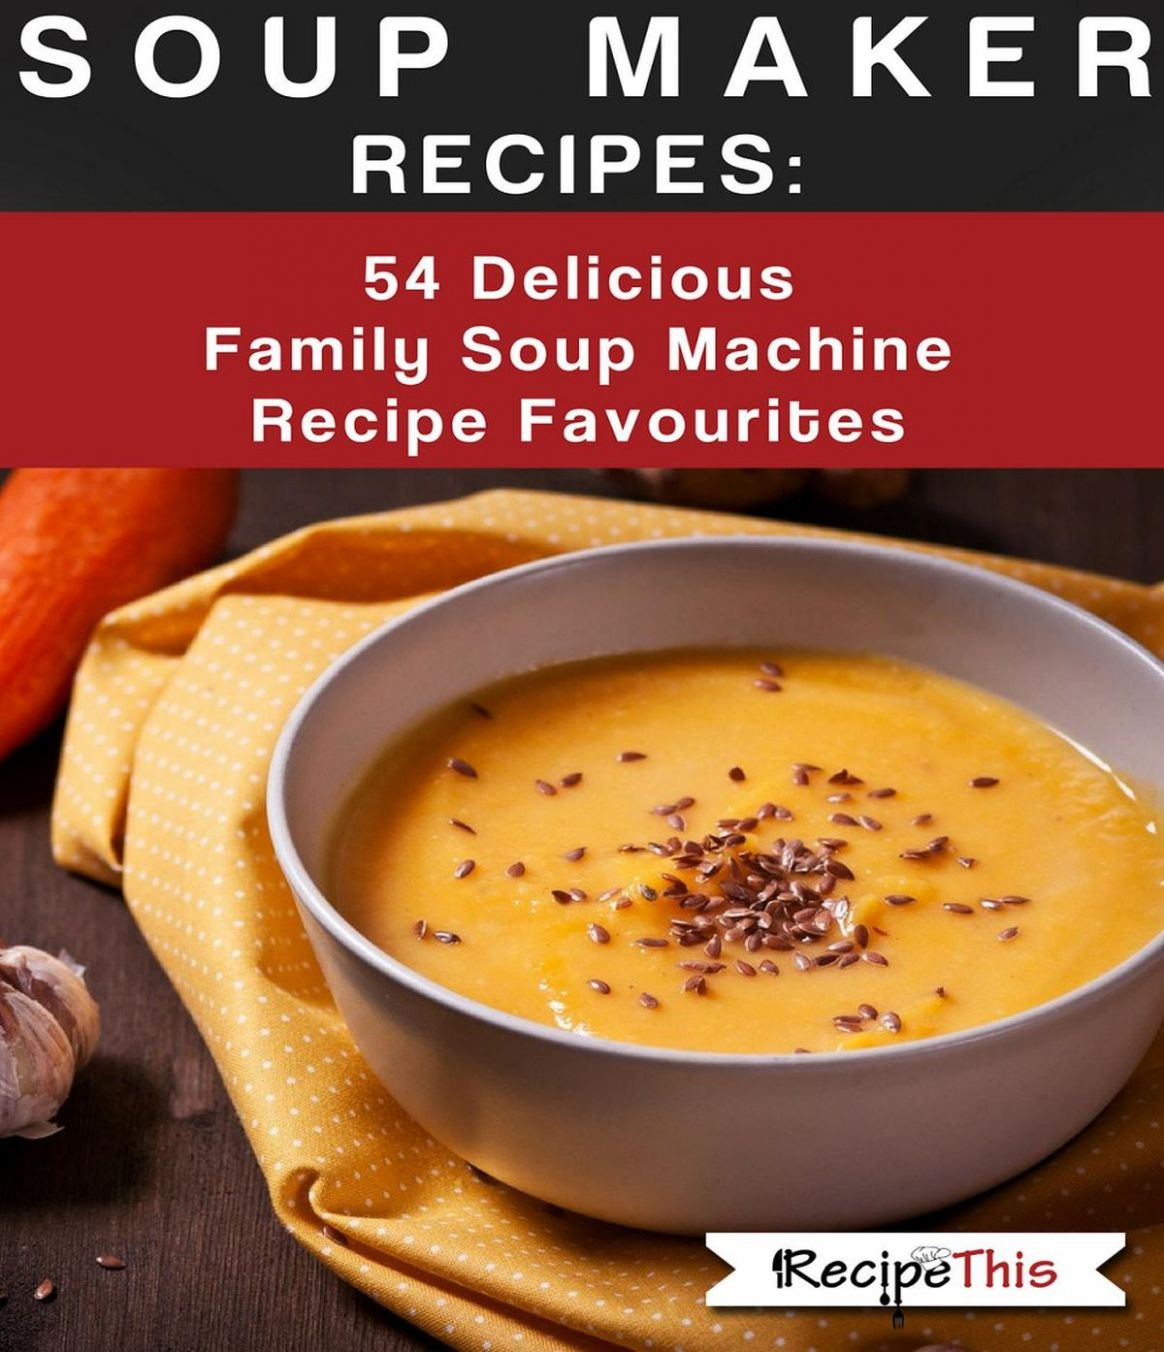 Soup Maker Recipes: 11 Delicious Family Soup Machine Recipe Favourites  ebook by Recipe This - Rakuten Kobo